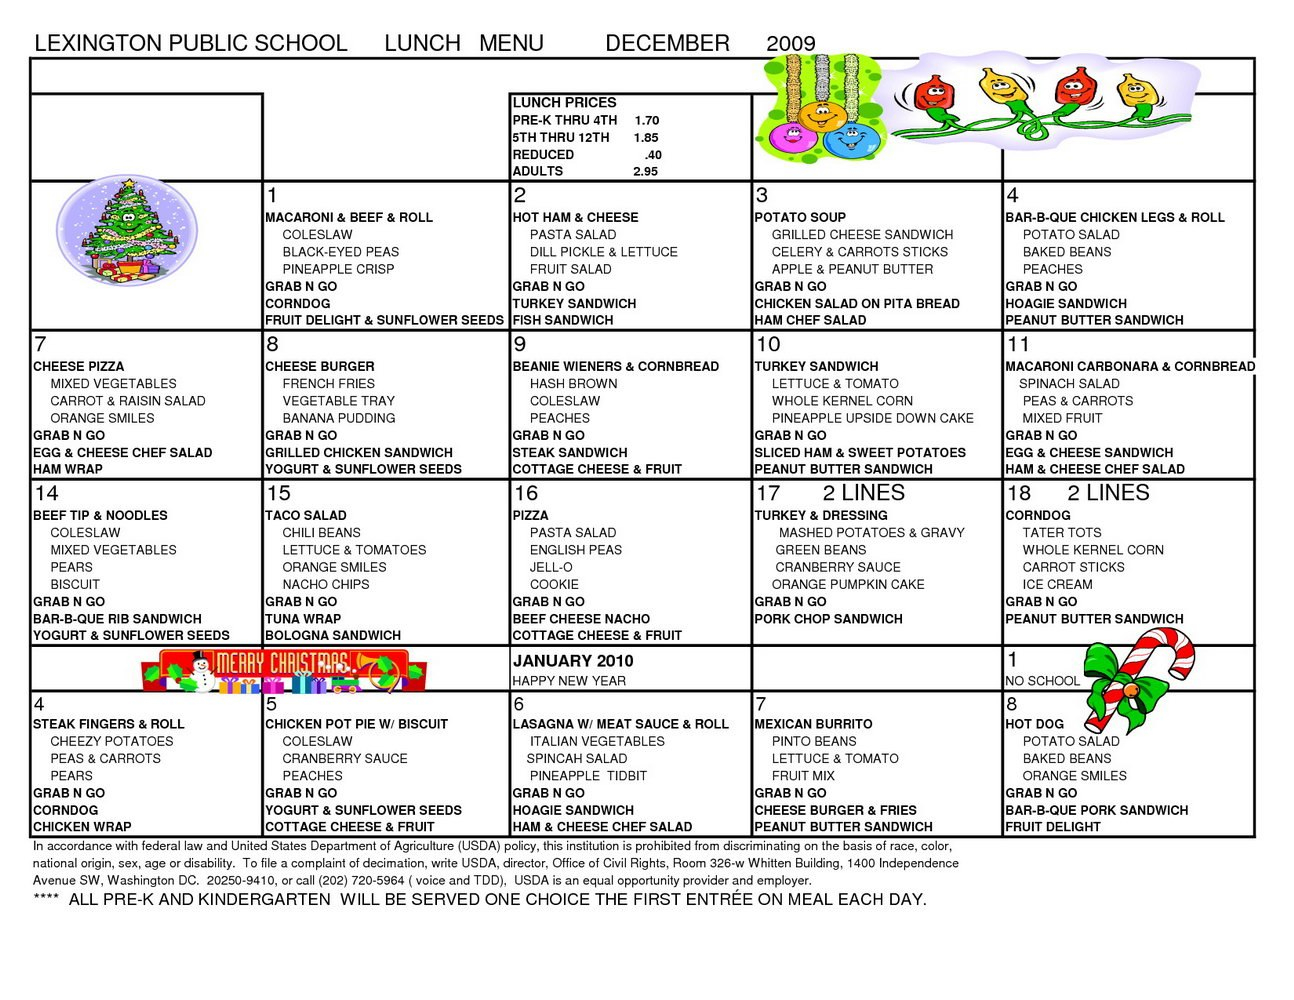 School Lunch Menu Template Best Ideas Calendar Templates For School Lunch Menu Template